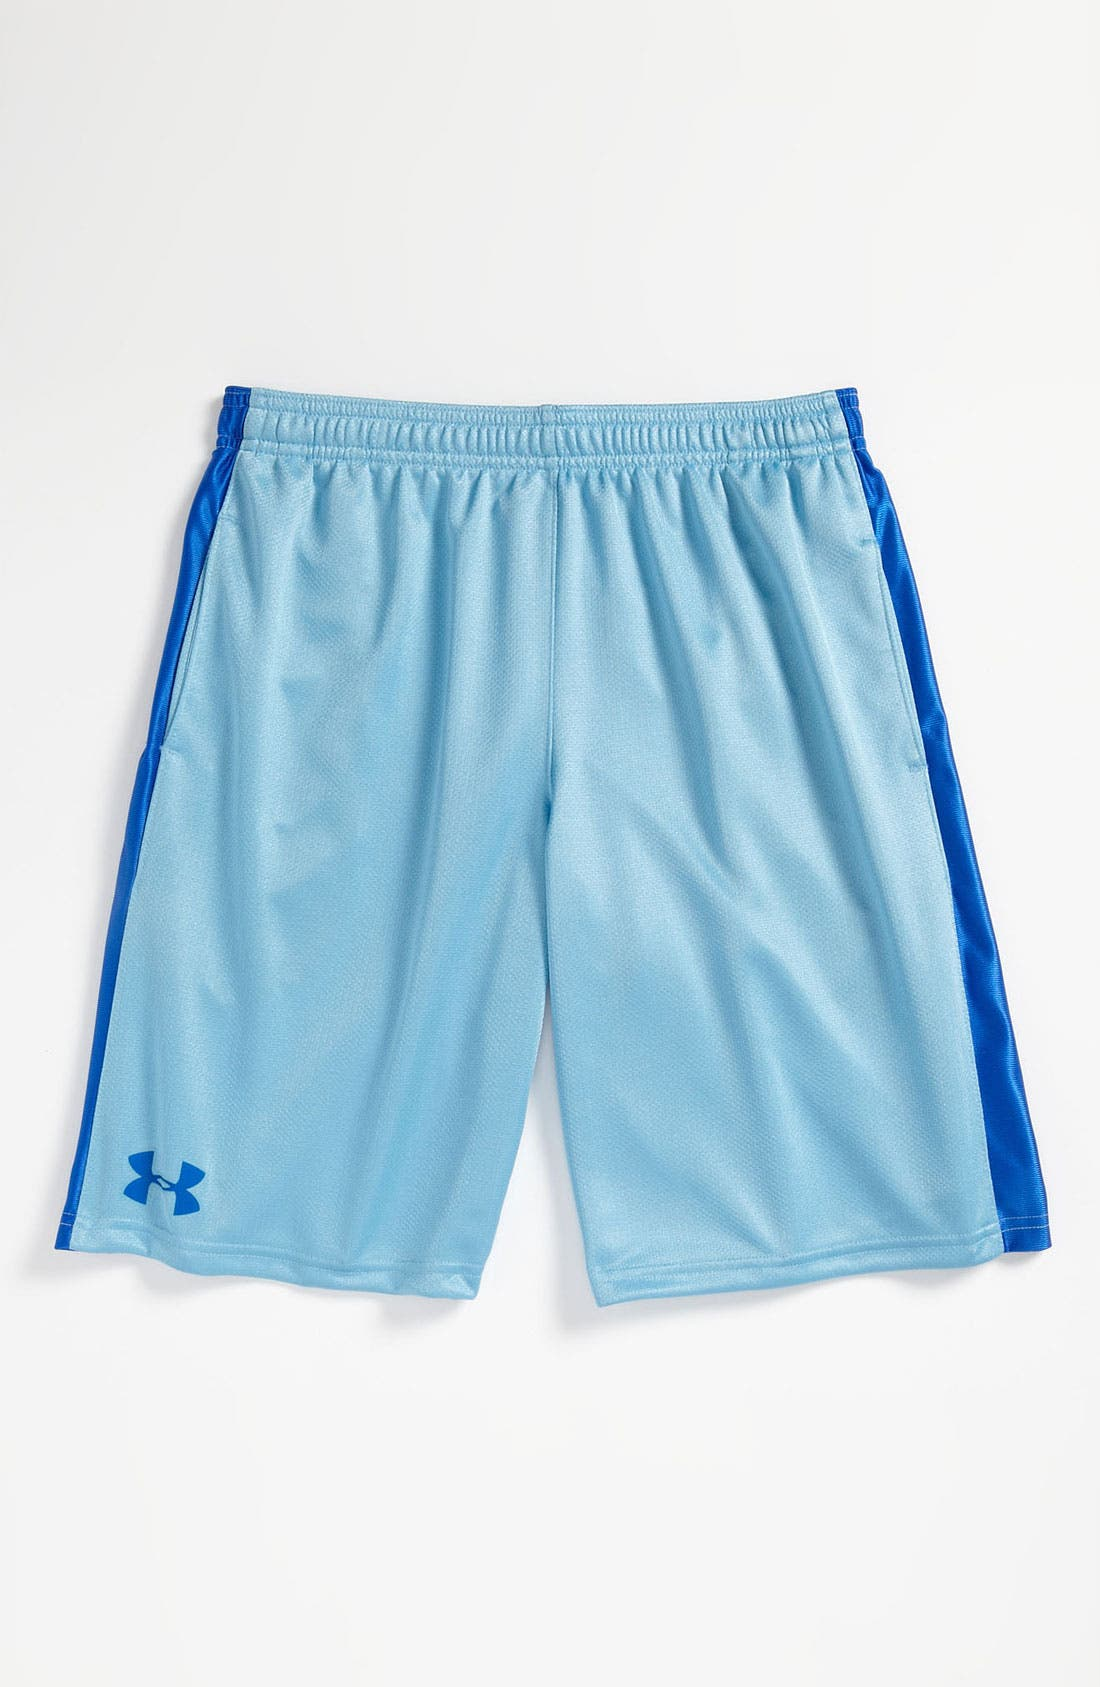 Alternate Image 1 Selected - Under Armour 'Ultimate' Training Shorts (Big Boys)